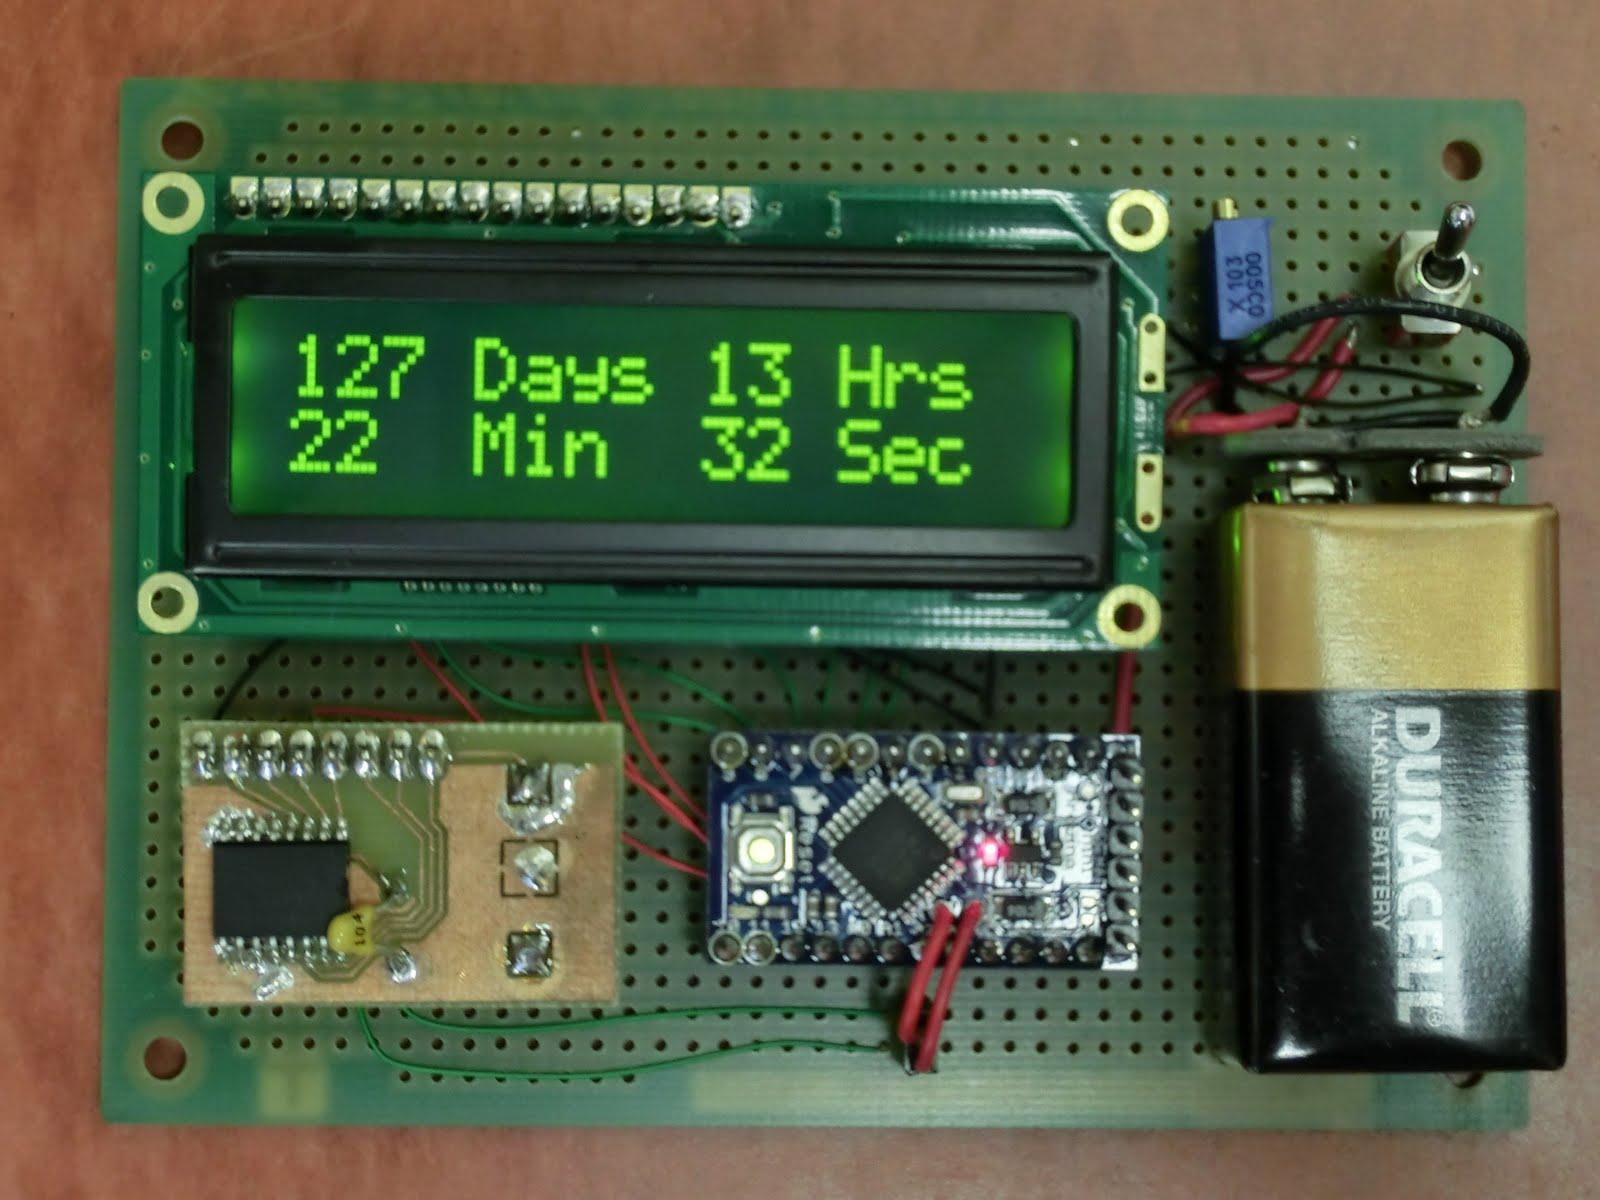 Best 25 Watchdog timer ideas on Pinterest Arduino